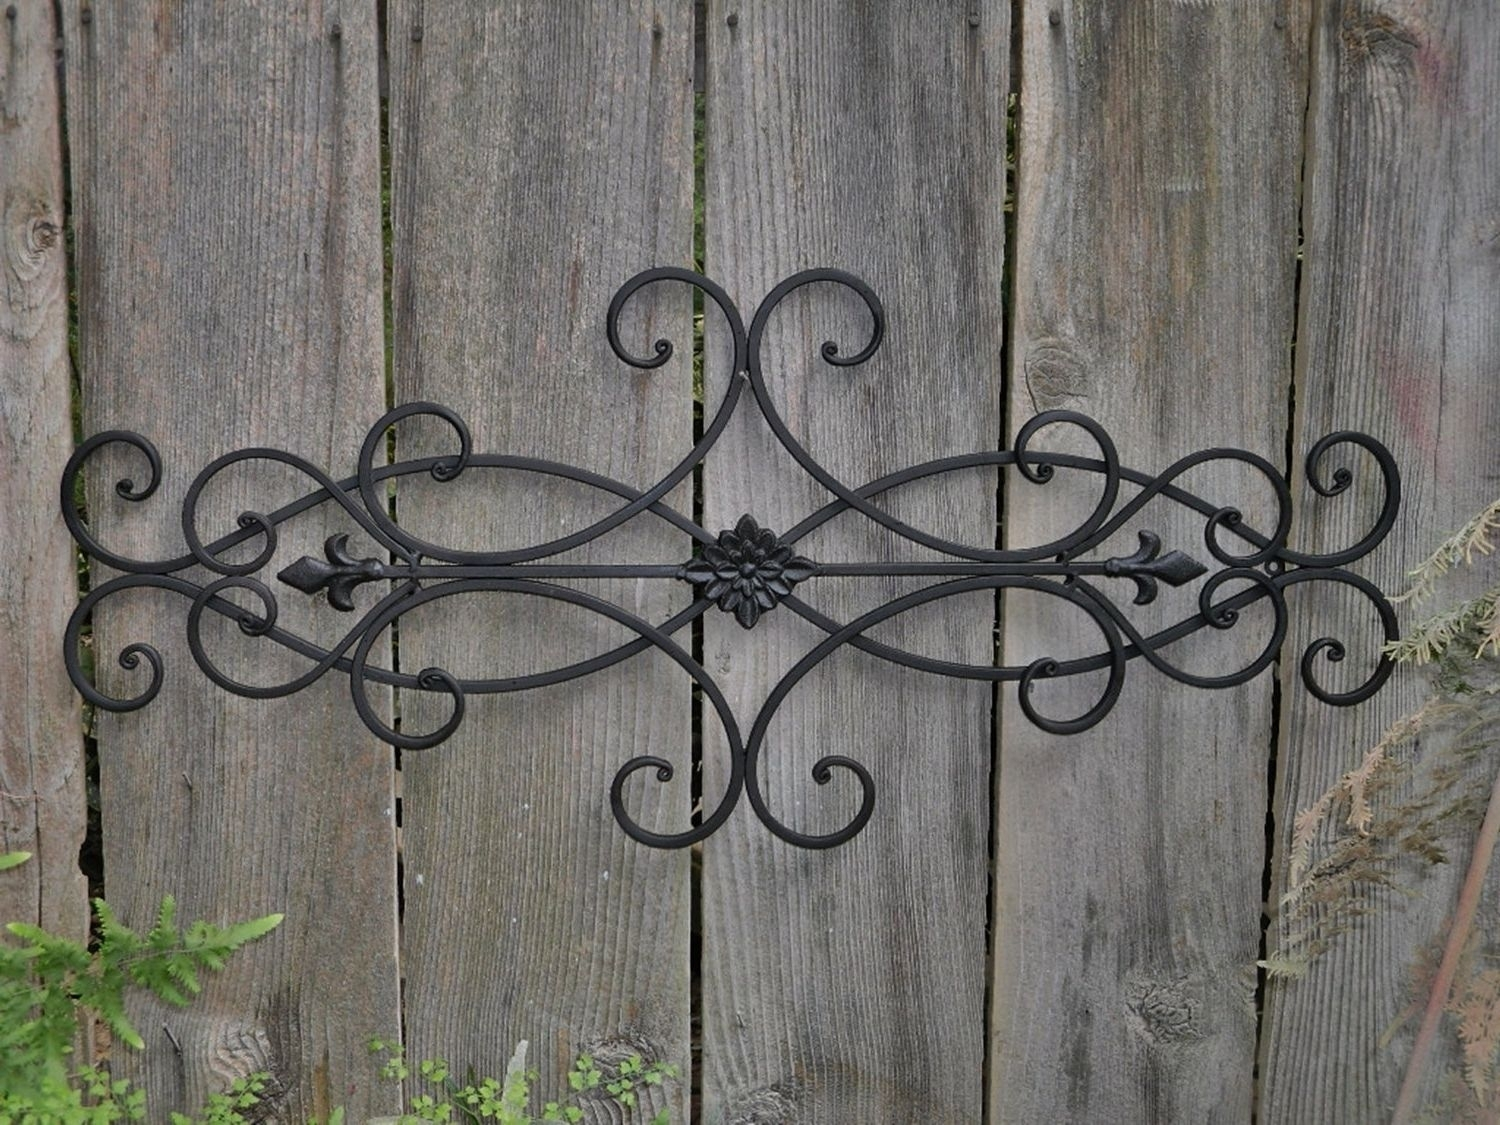 Astonishing Collection Of Large Wrought Iron Wall Art Pict For And intended for Iron Wall Art (Image 4 of 20)